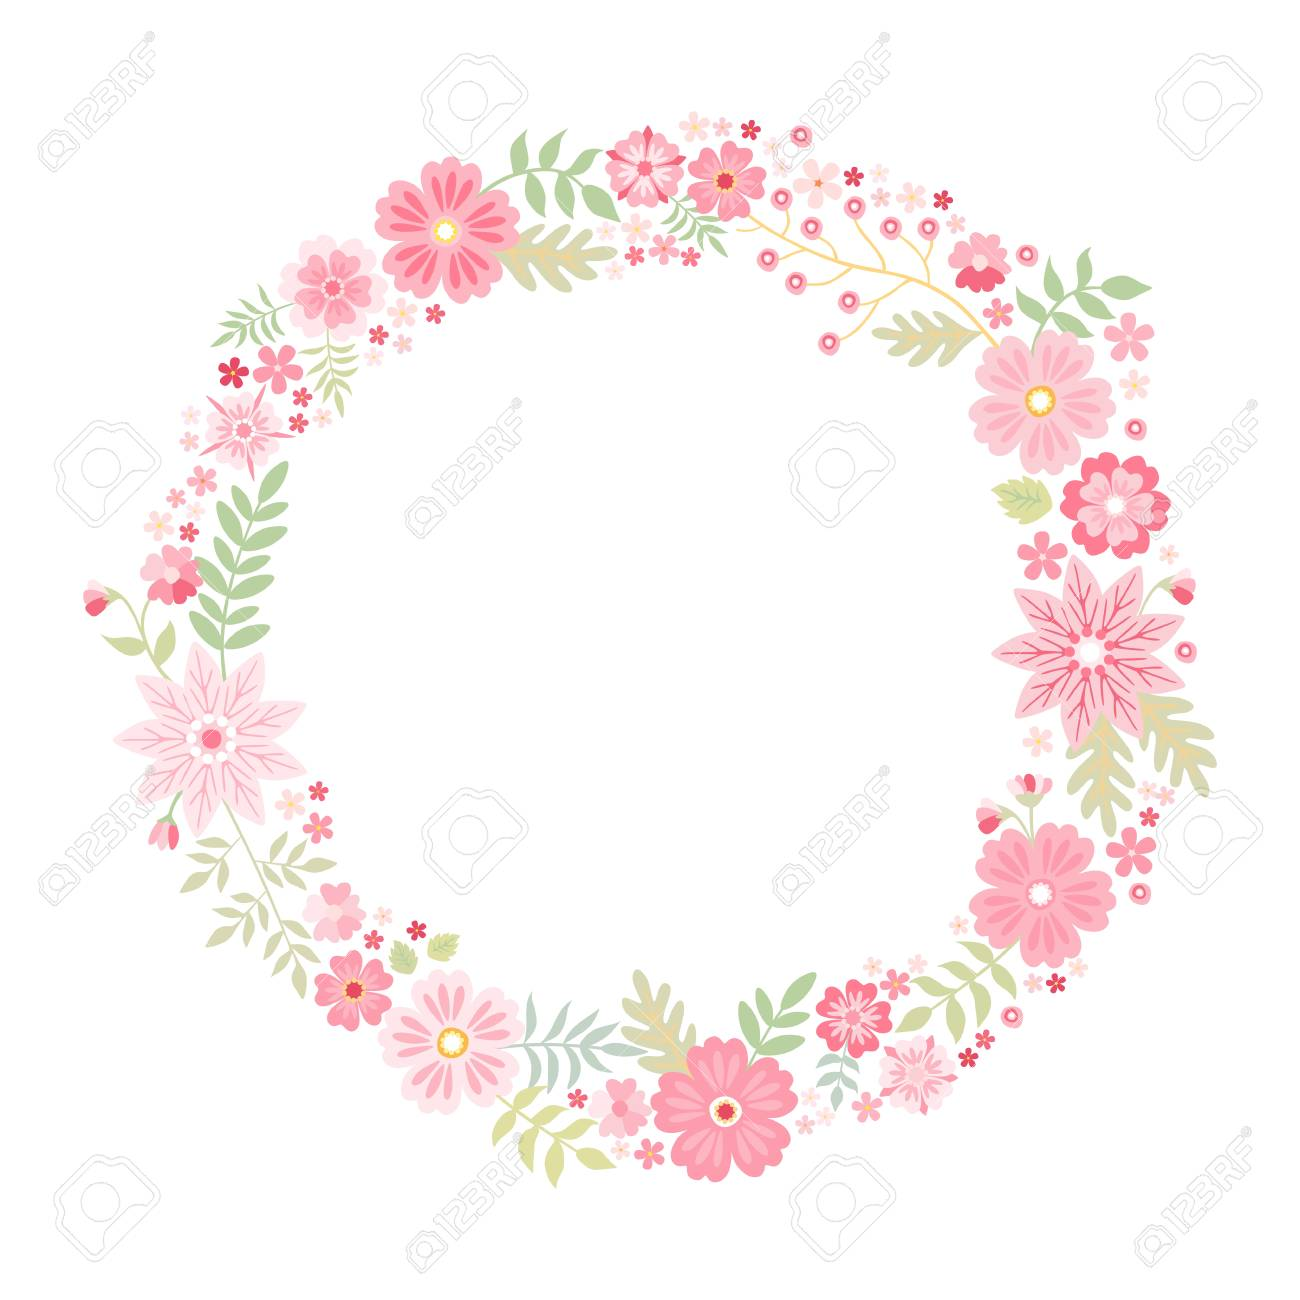 Romantic Floral Round Frame With Cute Pink Flowers Beautiful